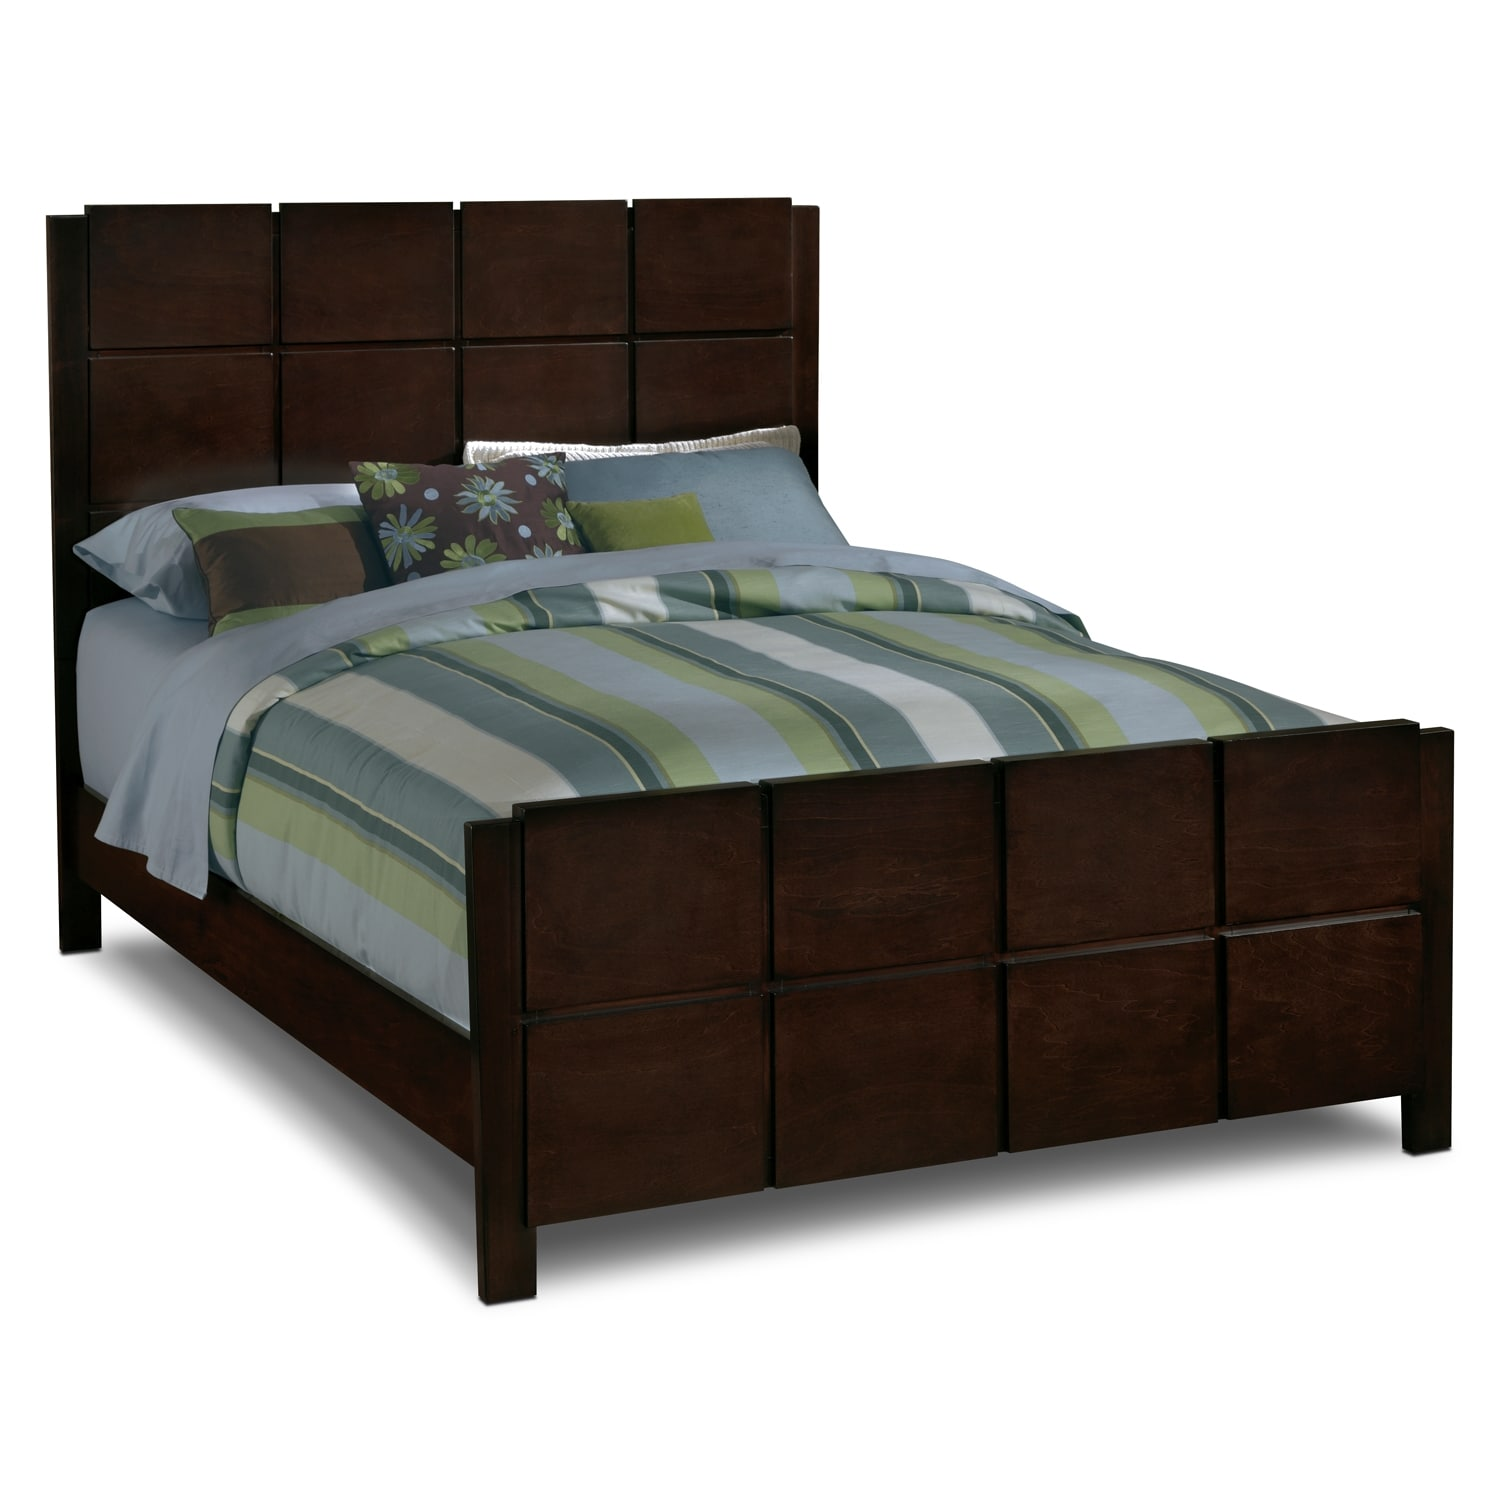 Cheap Wooden Bed Frames Mosaic Bed Dark Brown